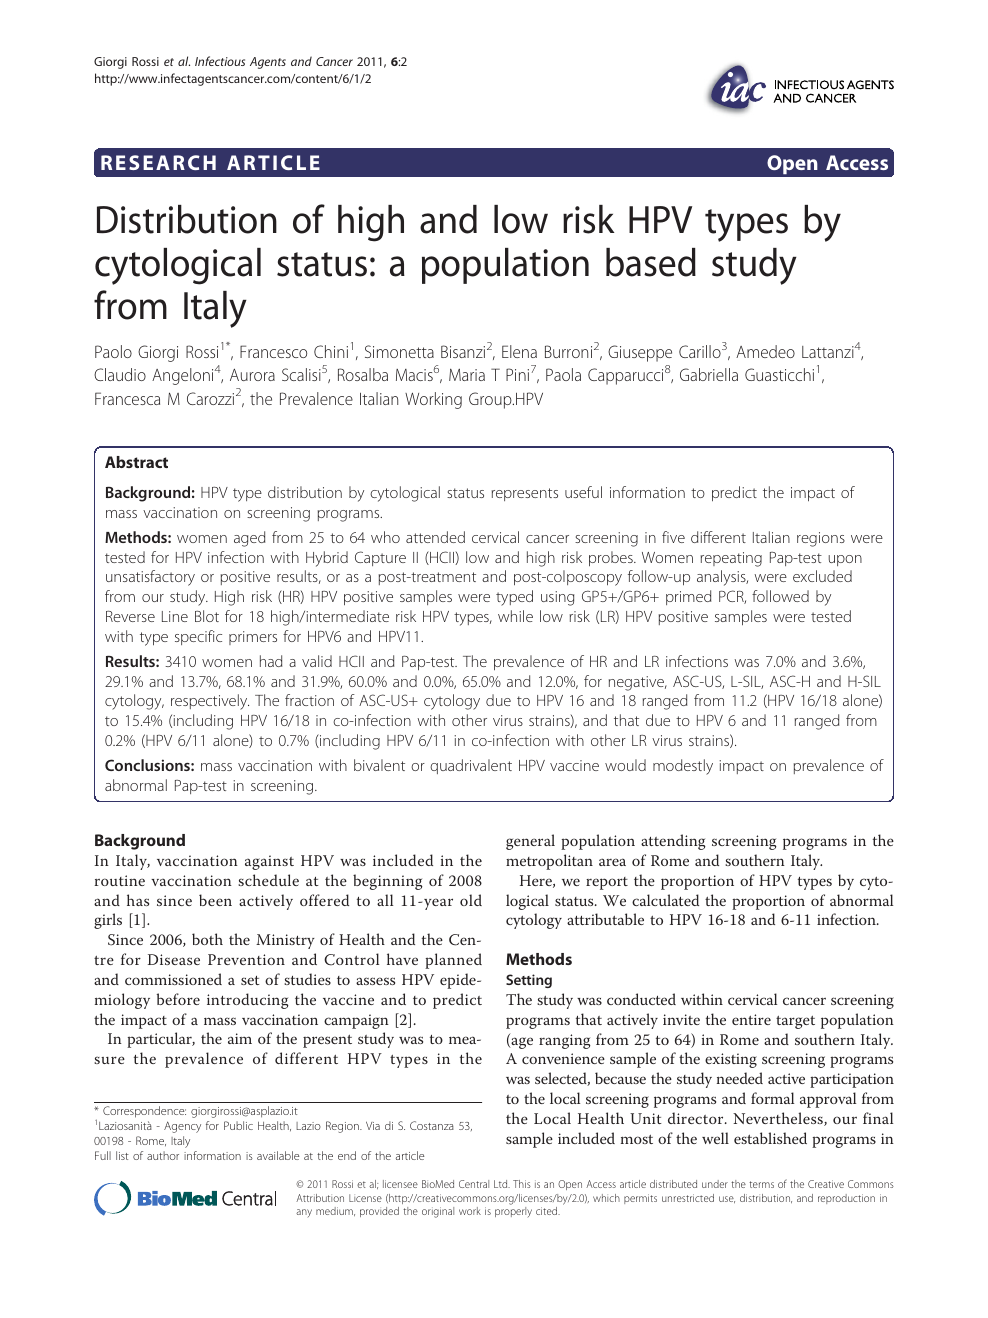 hpv in italy